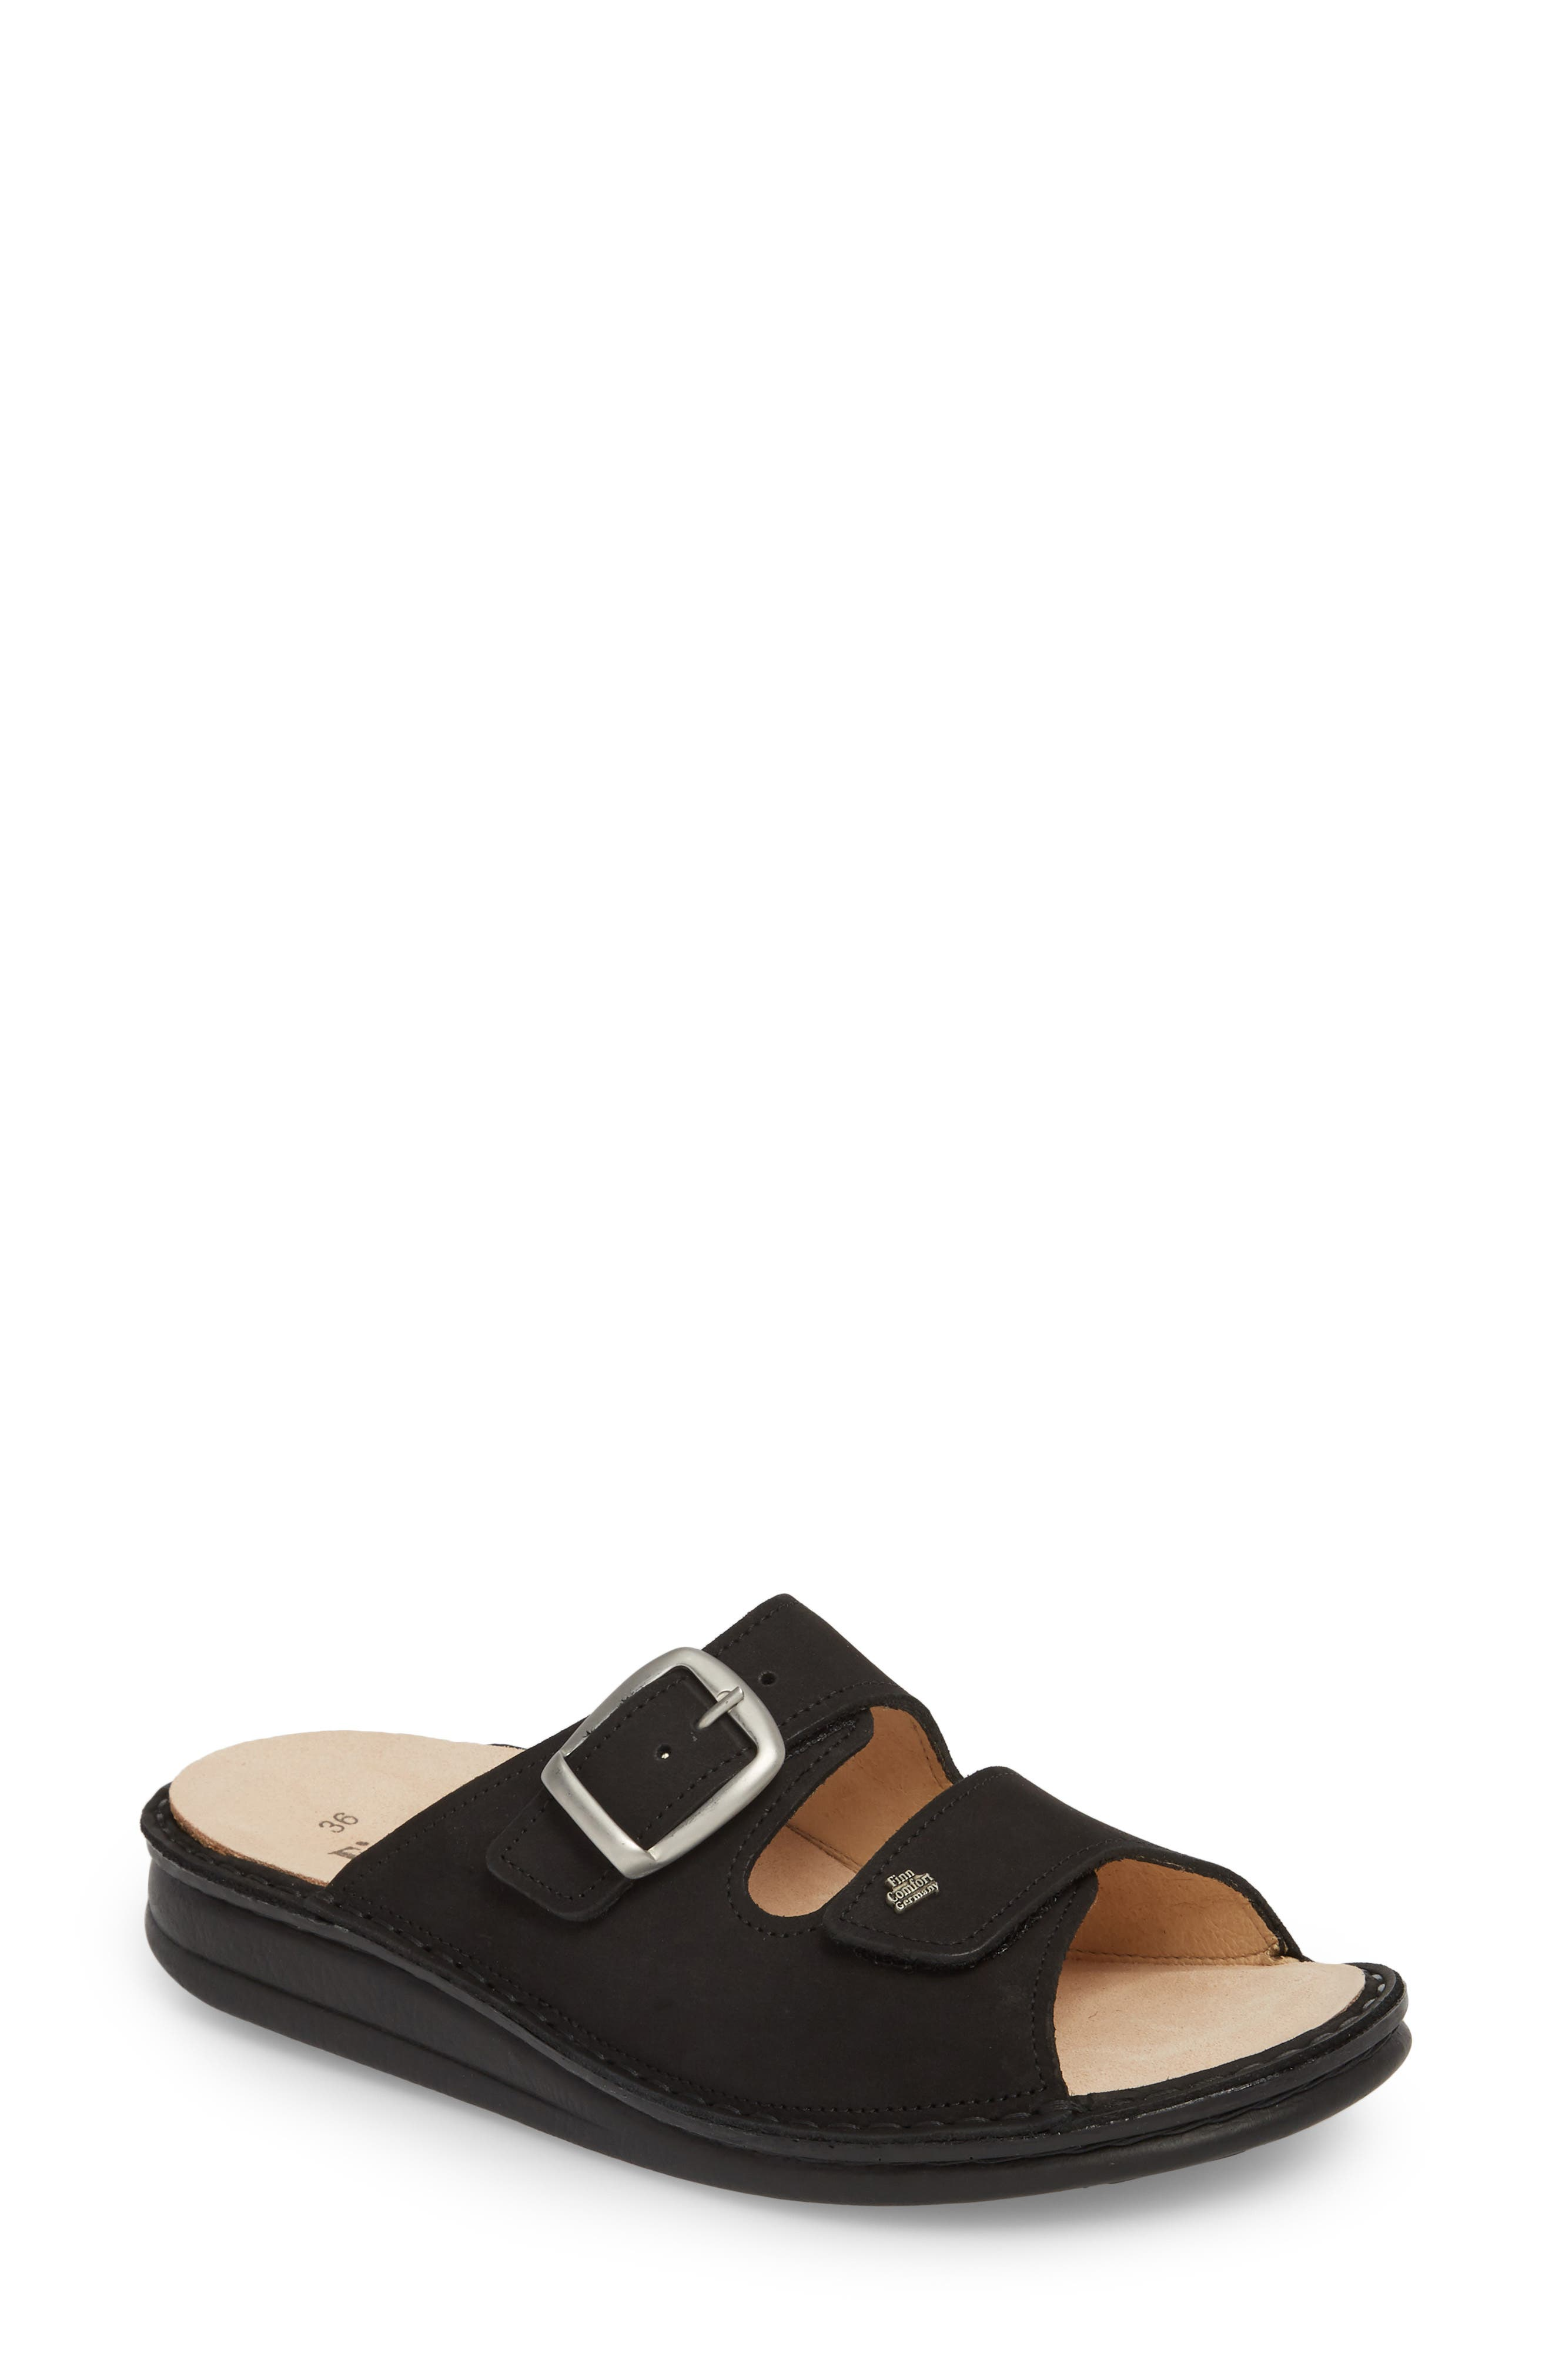 Harper Slide Sandal,                         Main,                         color, BLACK LEATHER